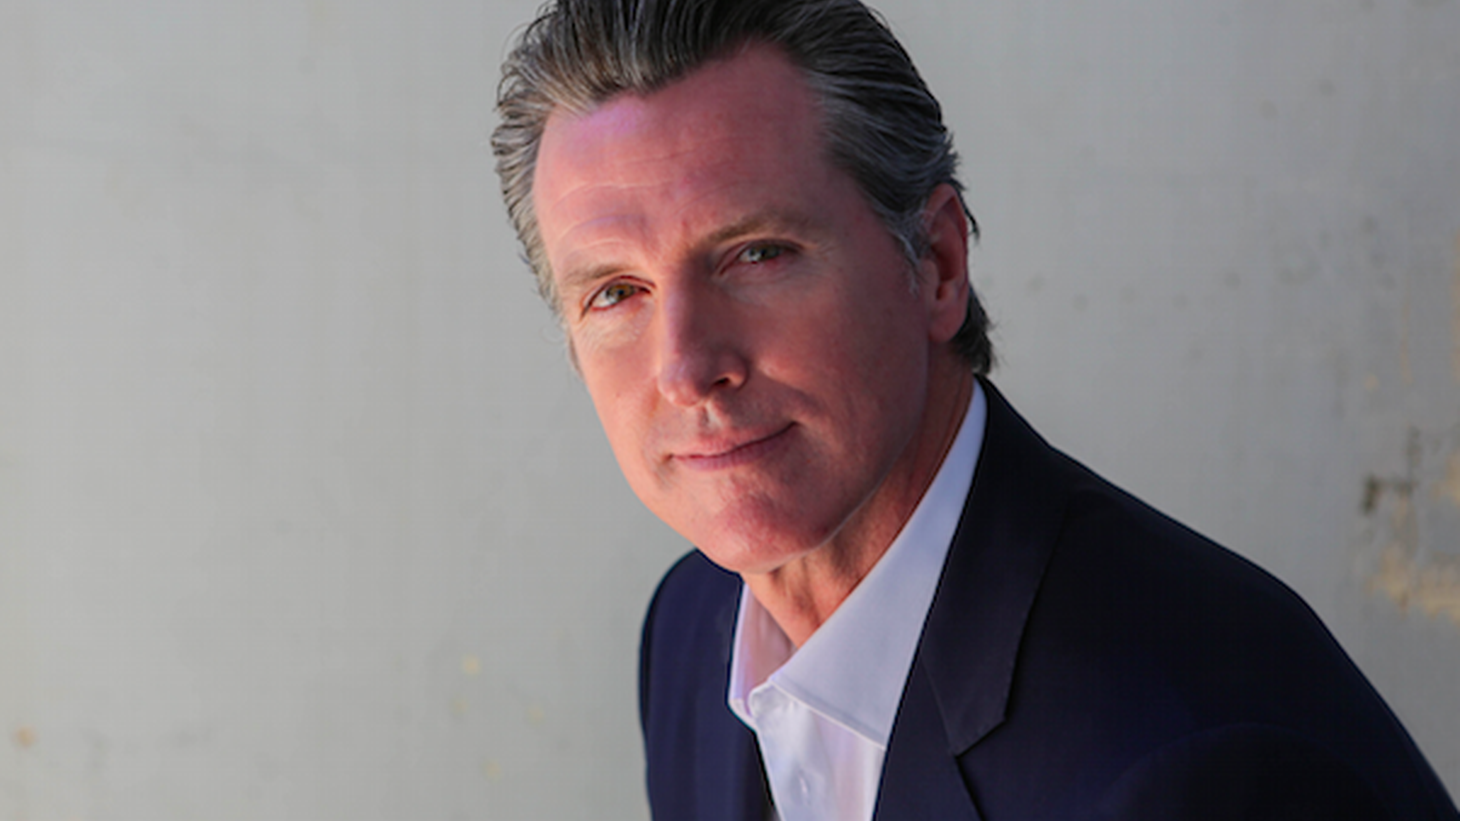 Gavin Newsom has been the Lieutenant Governor of California since 2011. Before that, he was the mayor of San Francisco.